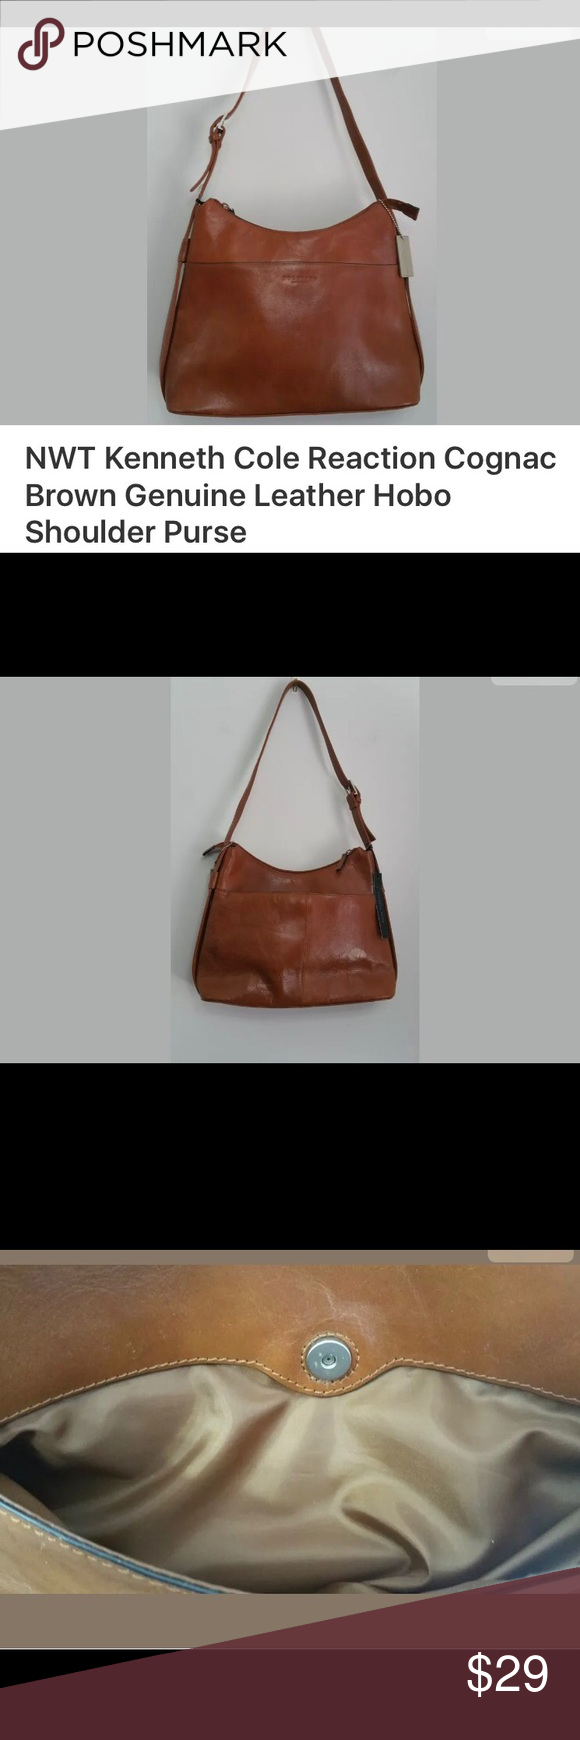 Kenneth Cole Reaction leather hobo shoulder bag Genuine leather, n w/o tags, depth 3.5, length 14, height 8.5, medium size bag, strap drop 14 Kenneth Cole Reaction Bags Hobos